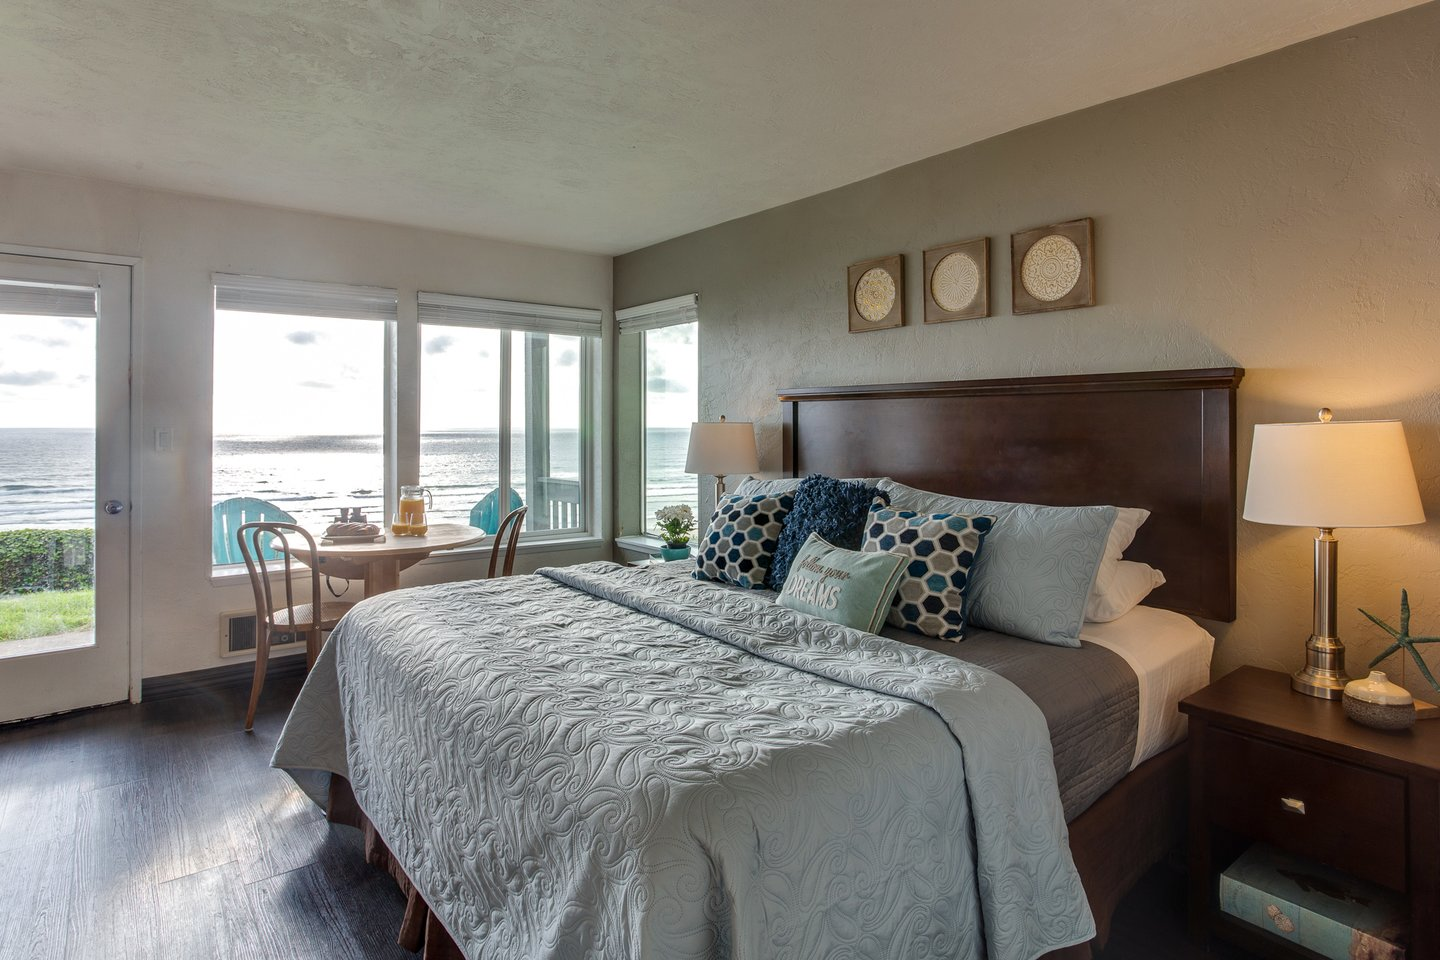 Nye View has all the amenities for comfort including a king bed and awesome views!